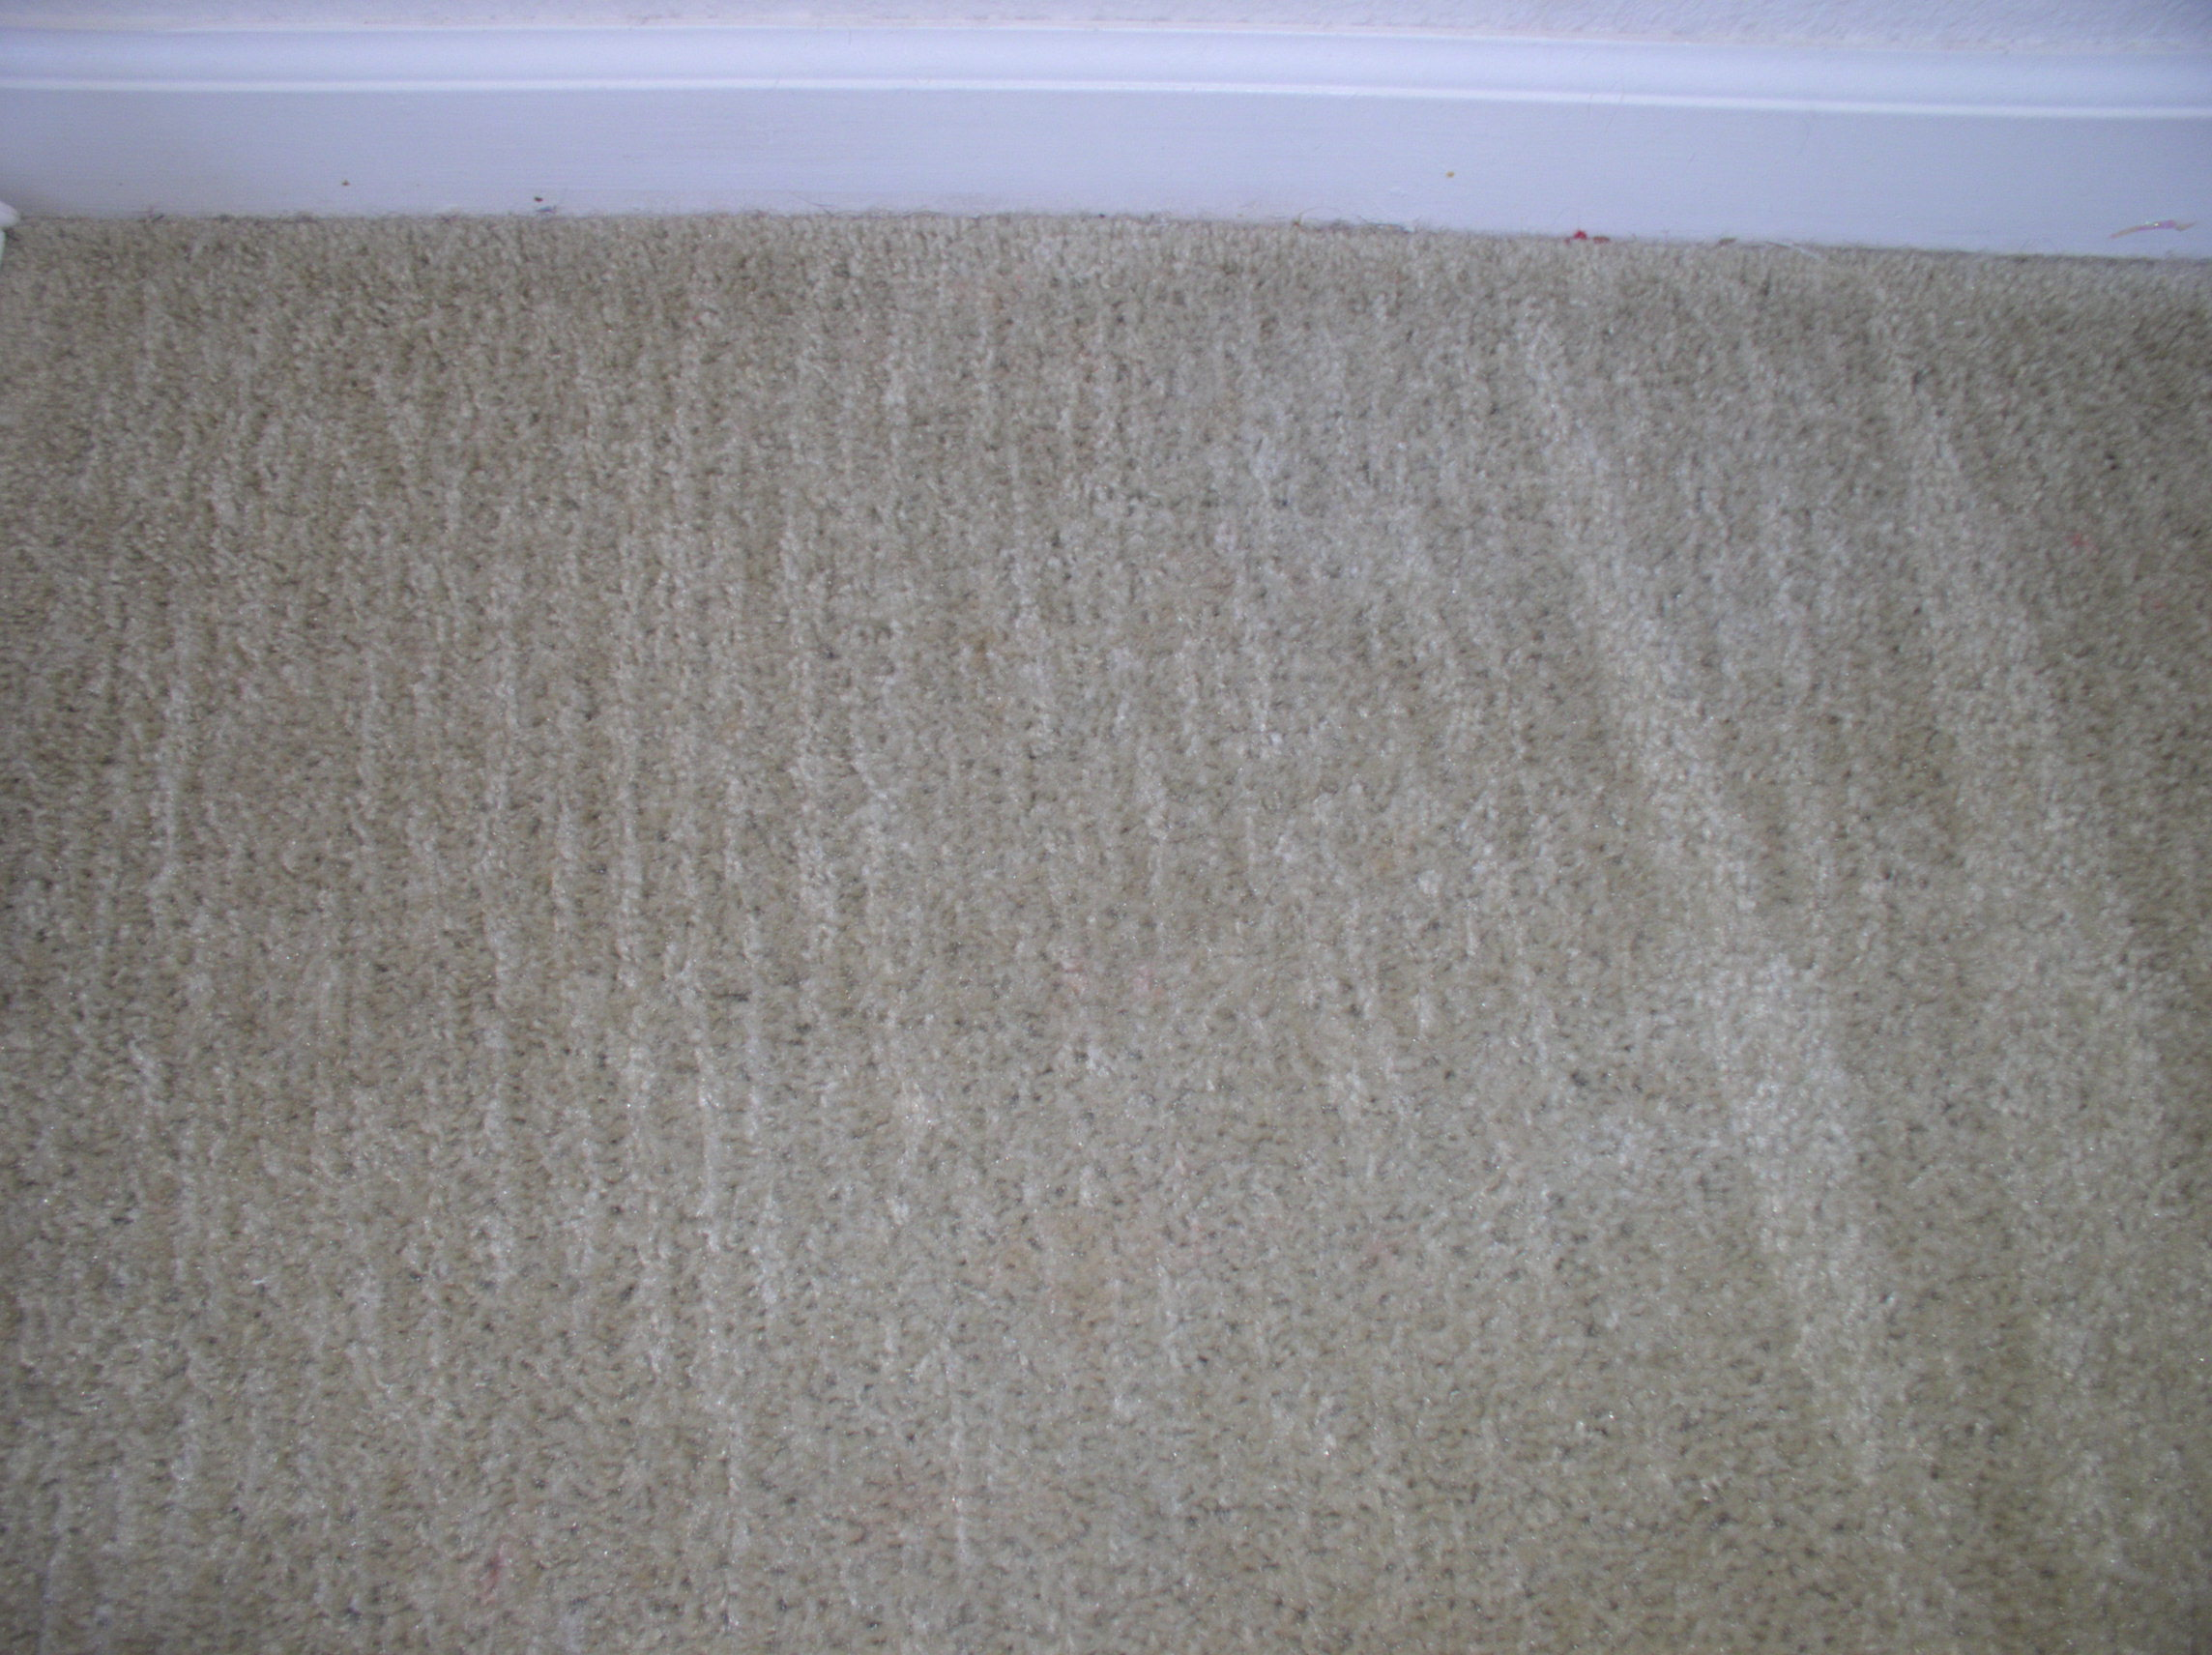 Spot/Stain Removal u2022 Sams Carpet Cleaning in St. Louis and ...